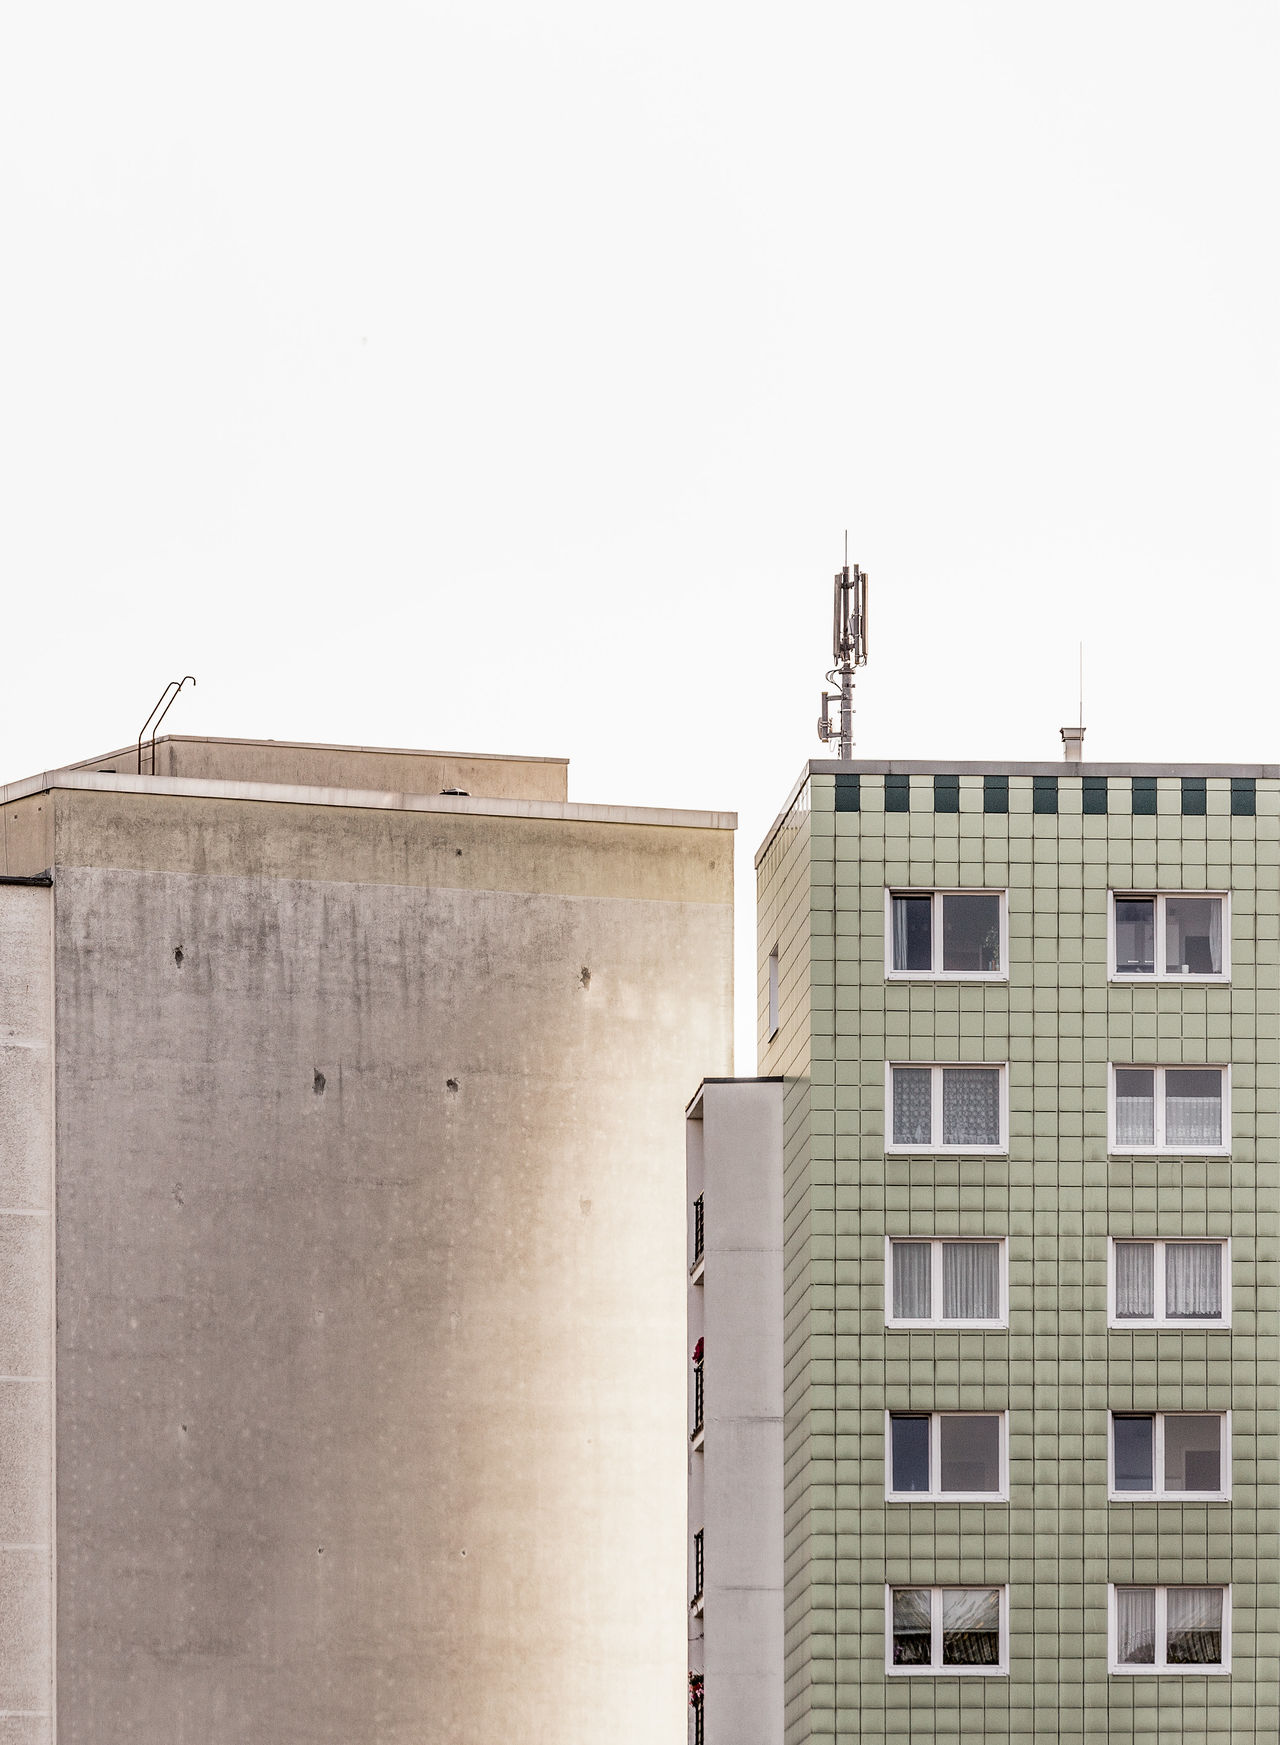 Beautiful stock photos of berliner mauer, architecture, building exterior, built structure, day